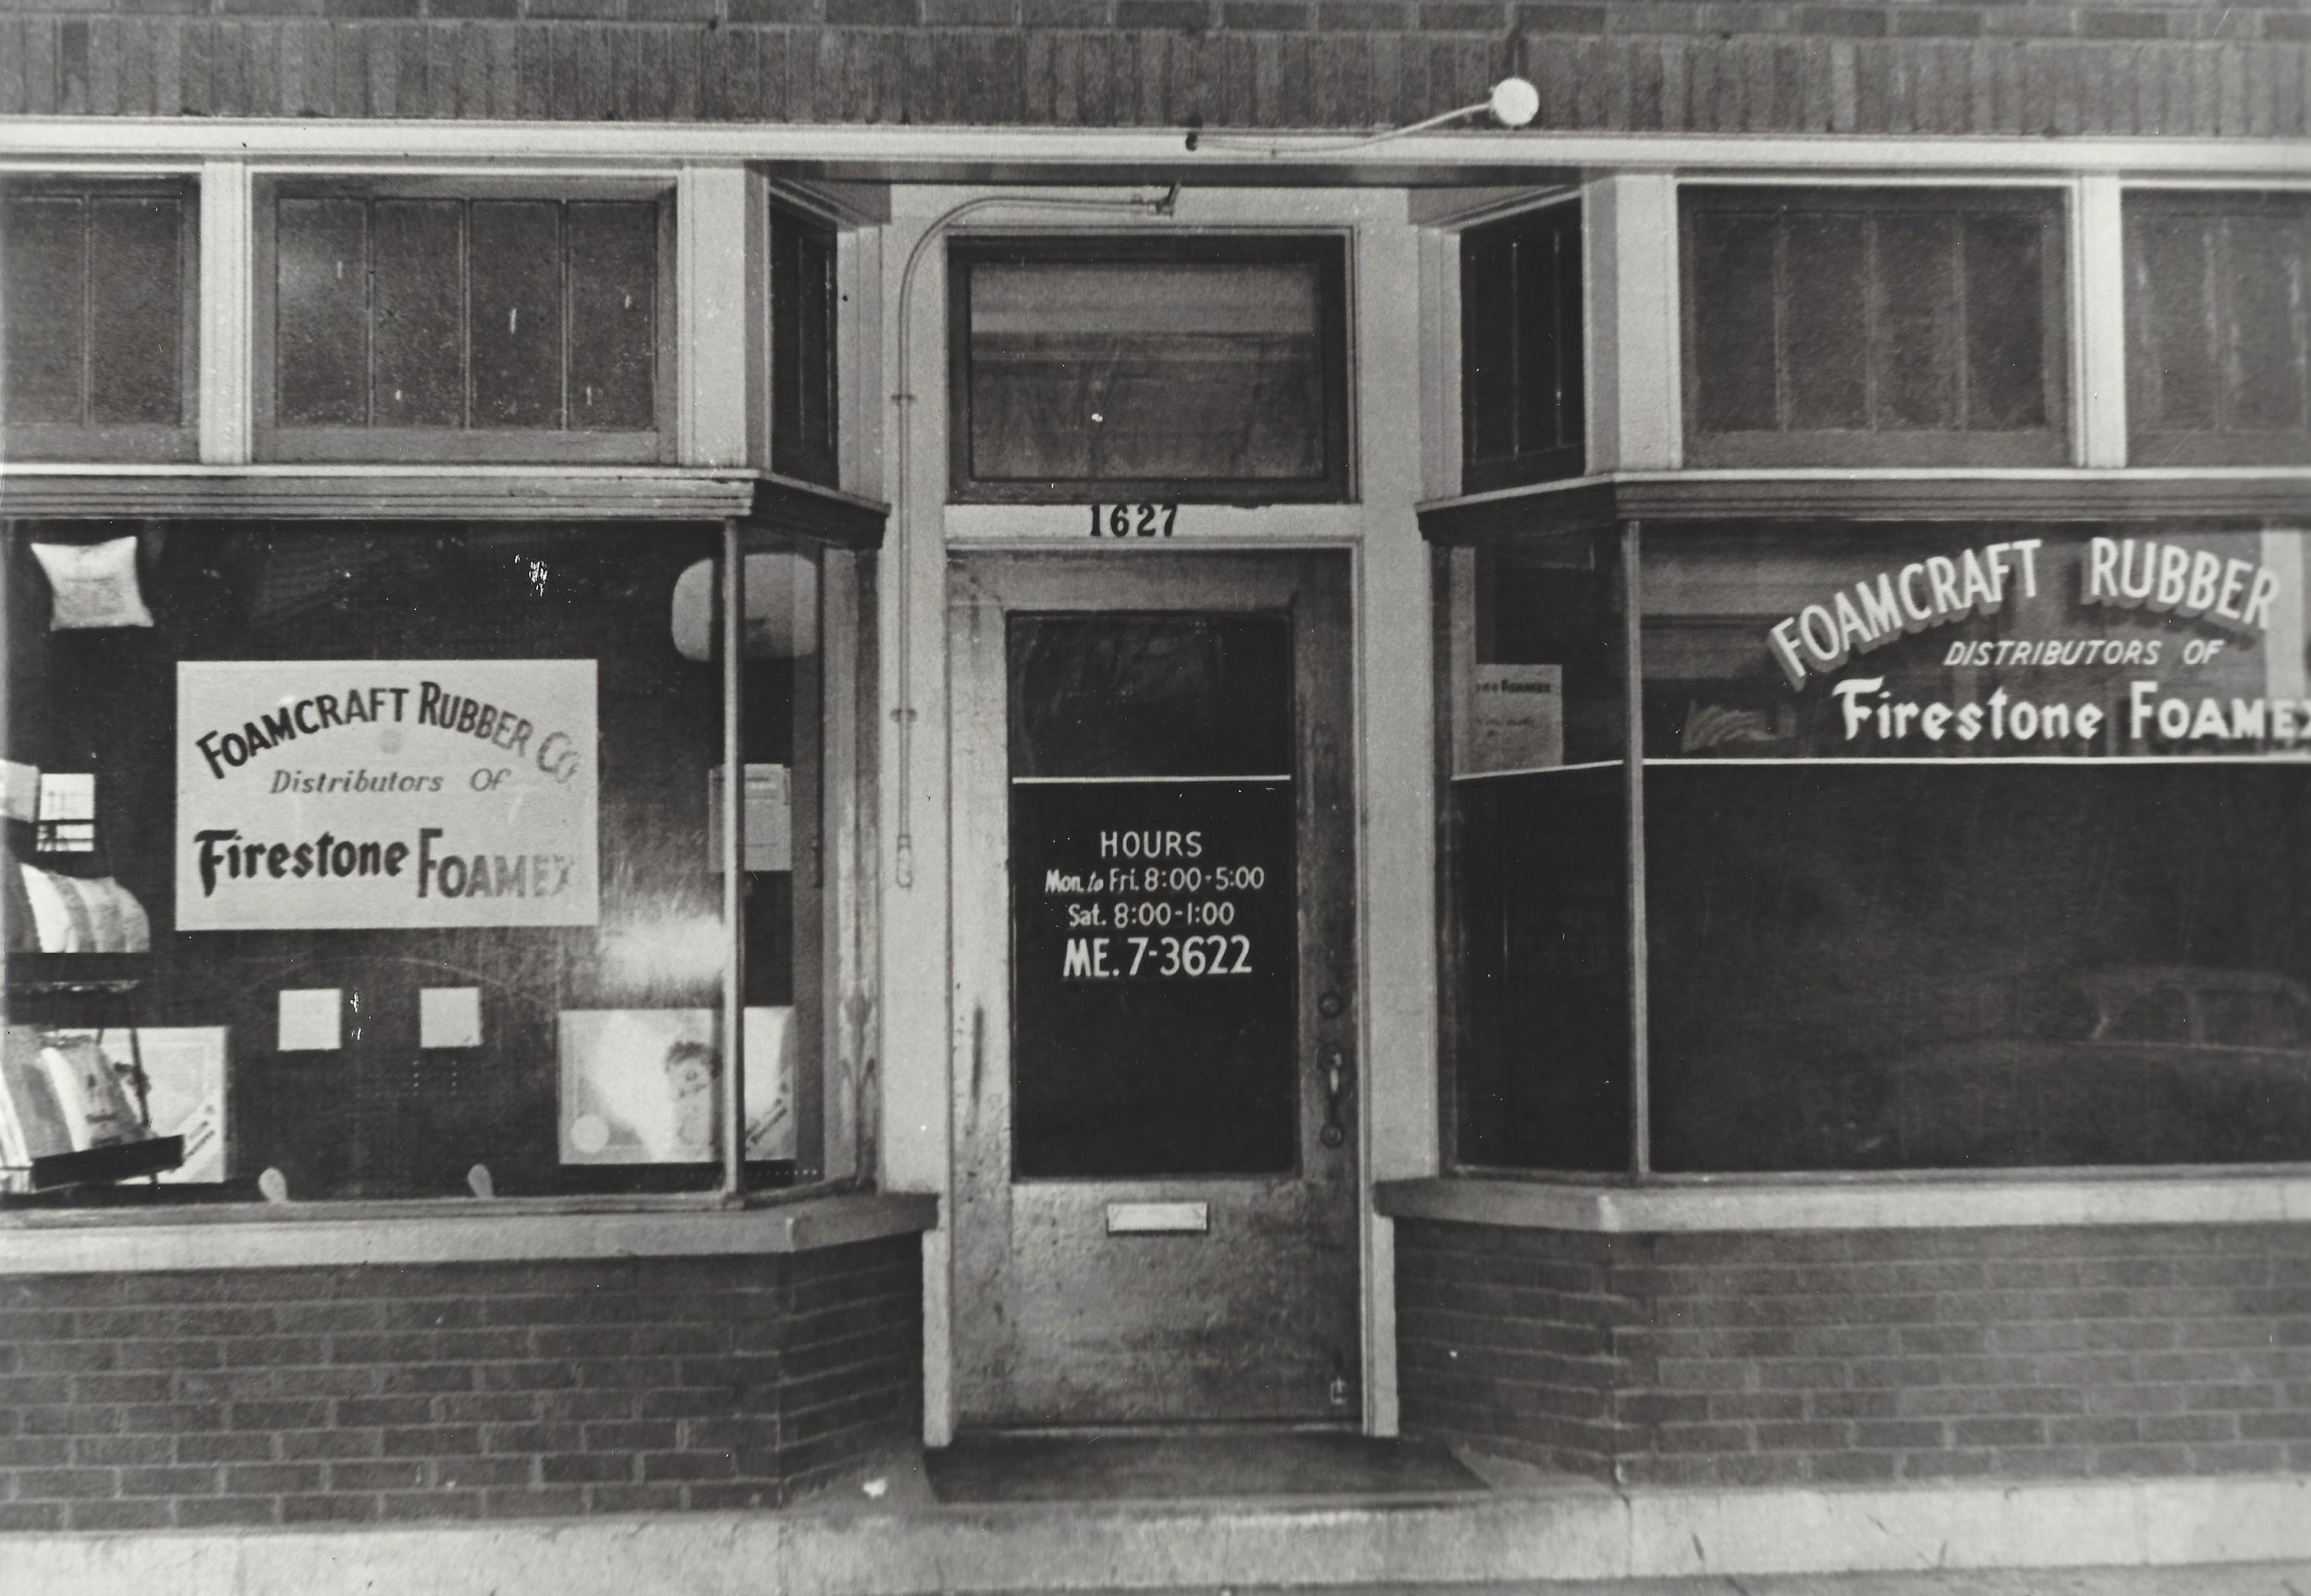 Our original headquarters, located at 1627 Prospect Street in Fountain Square.